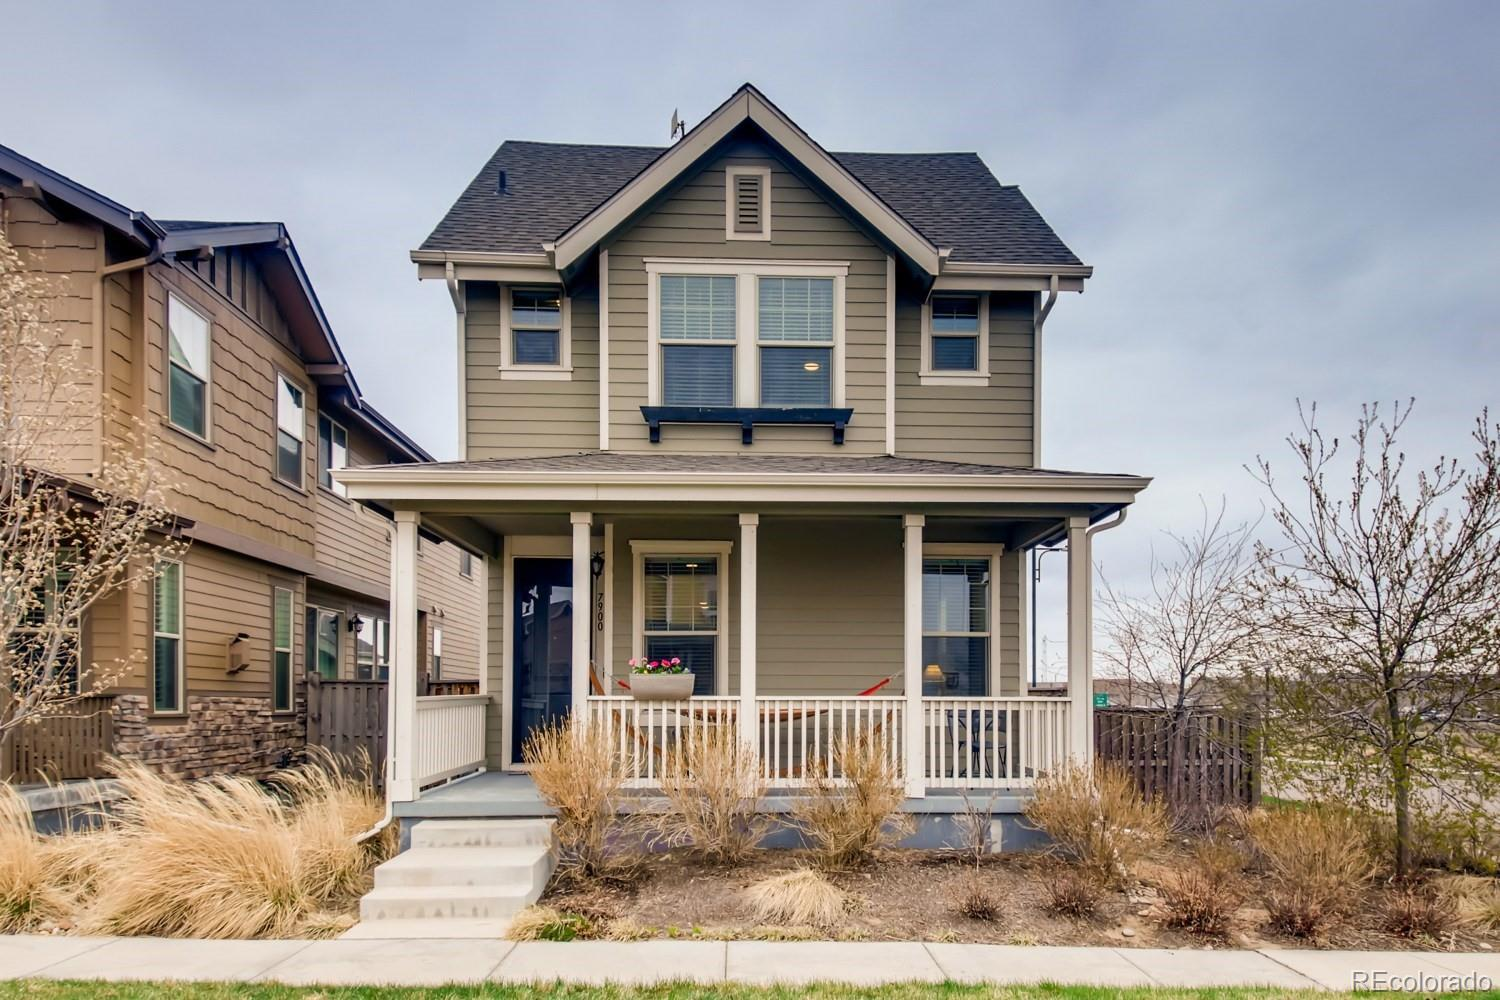 7900 E 55th Avenue, Denver, CO 80238 - #: 8172619